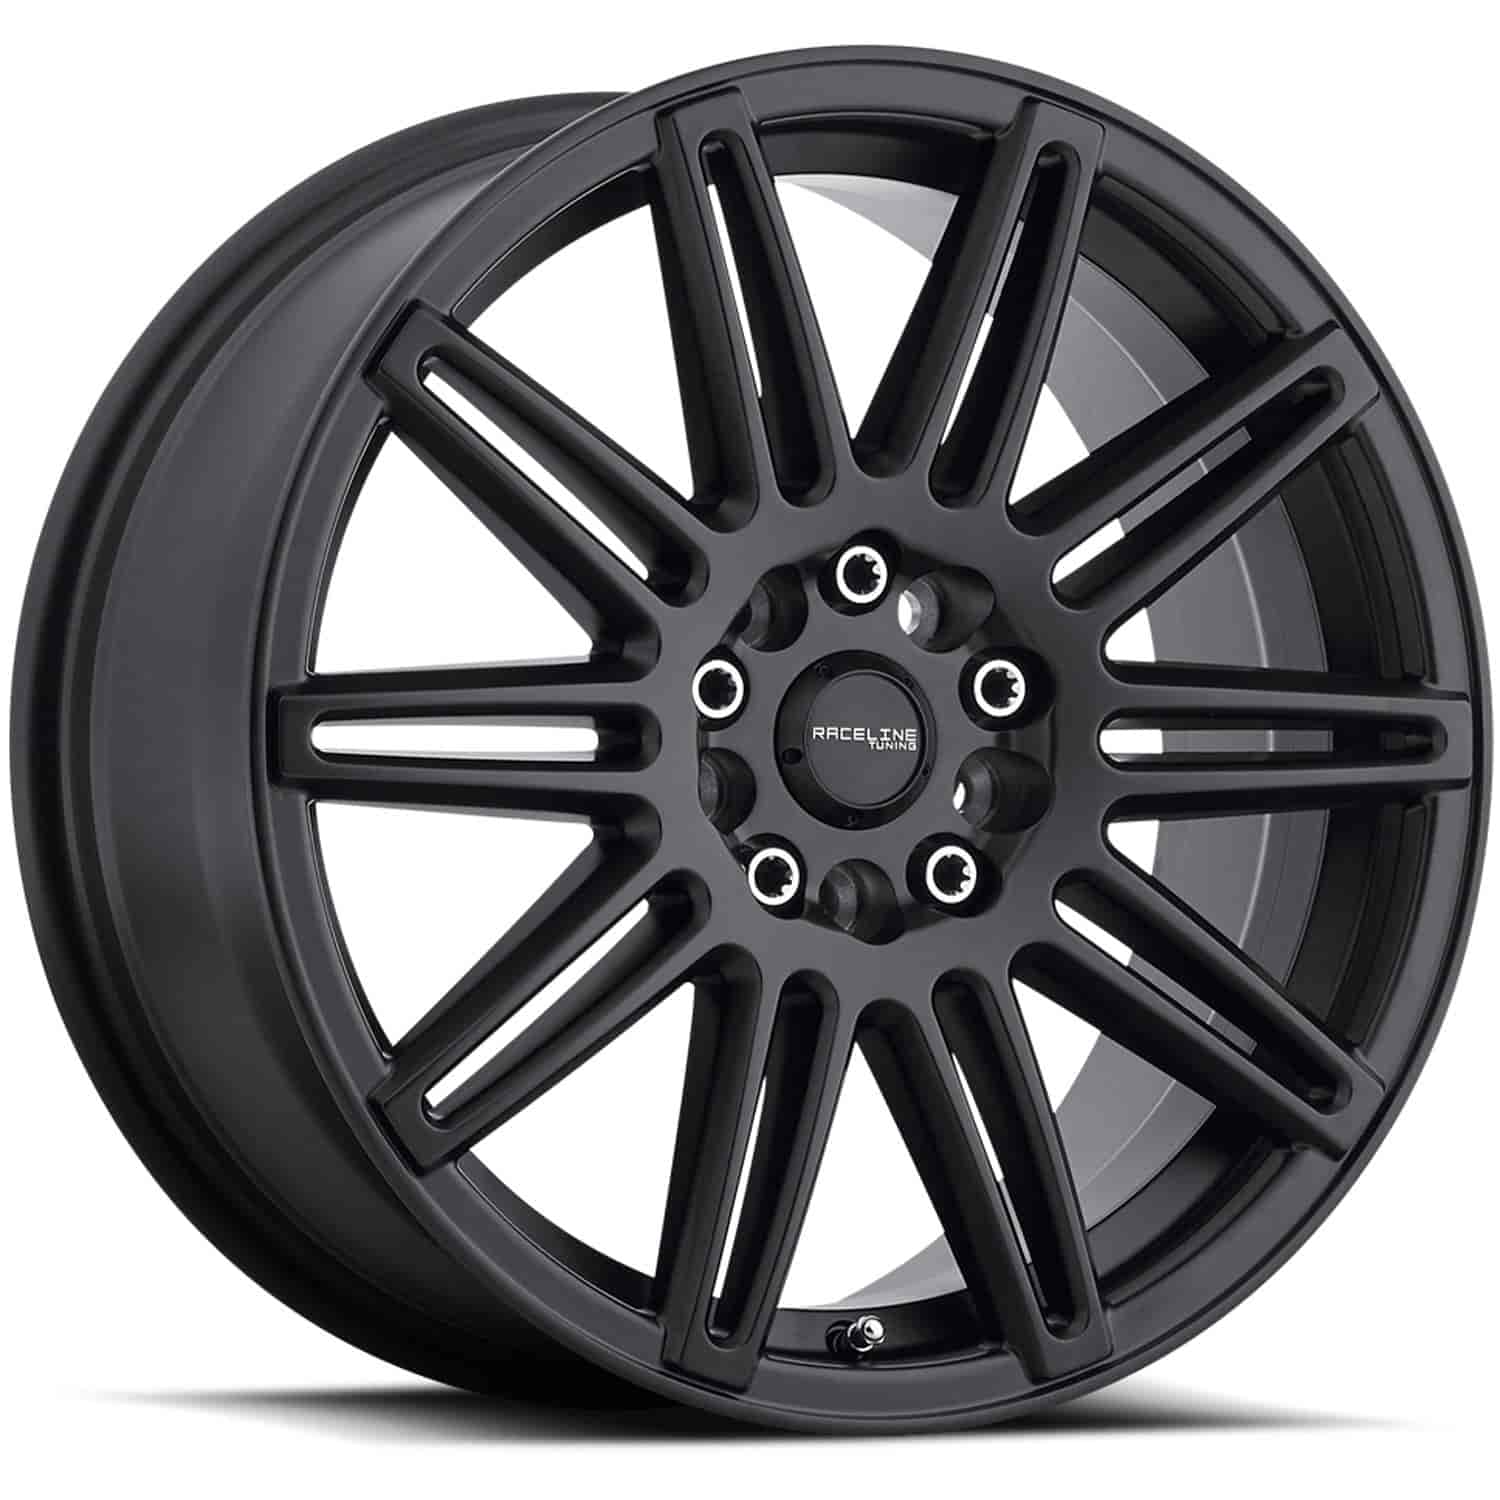 Raceline Wheels 143B7758640